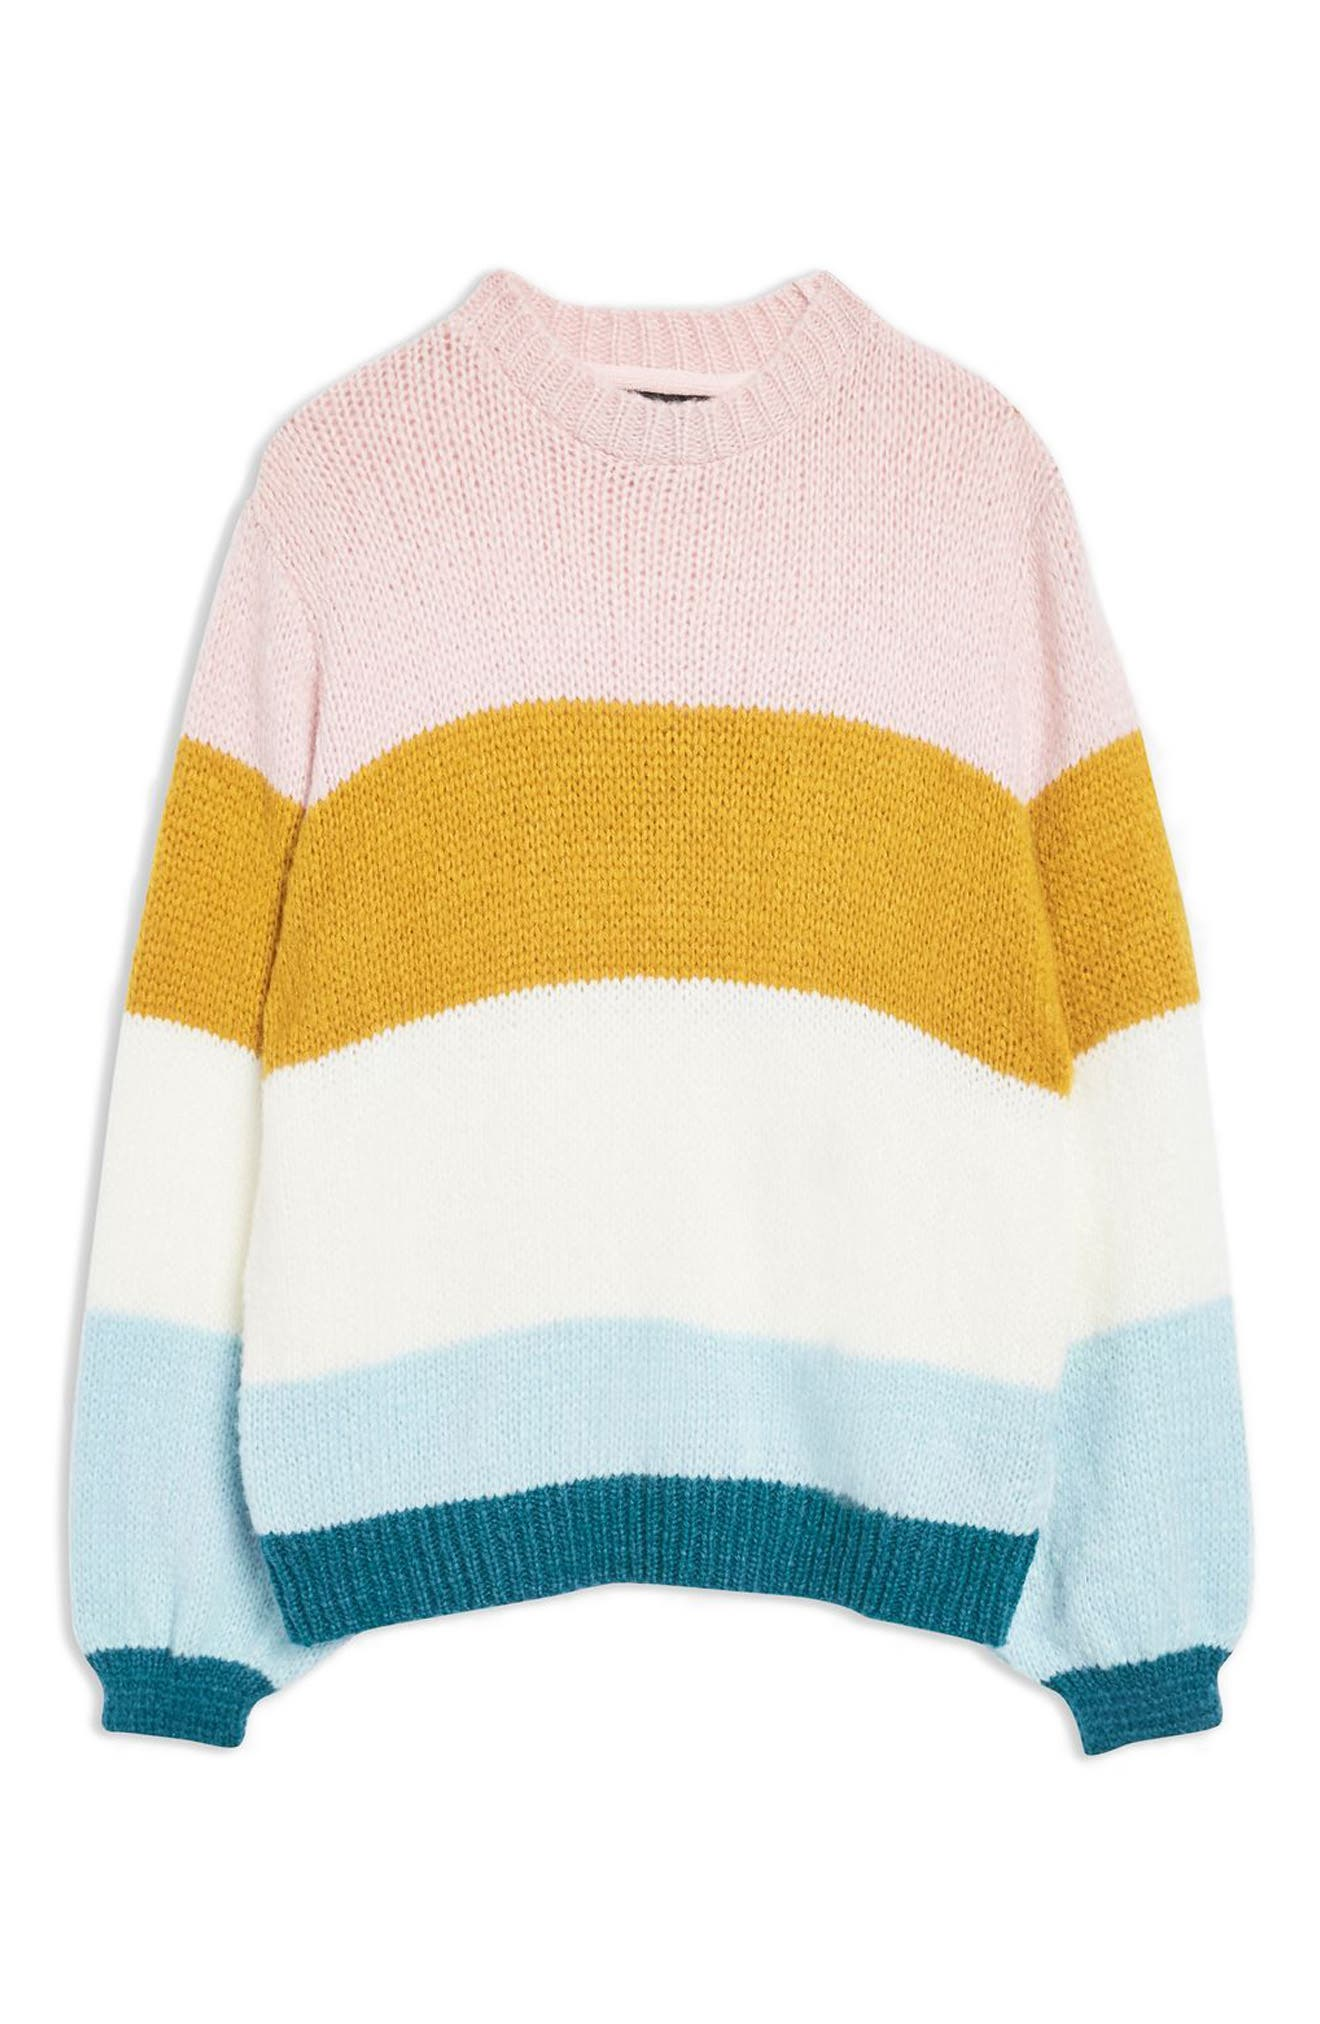 TOPSHOP, Colorblock Knit Pullover, Alternate thumbnail 3, color, 900